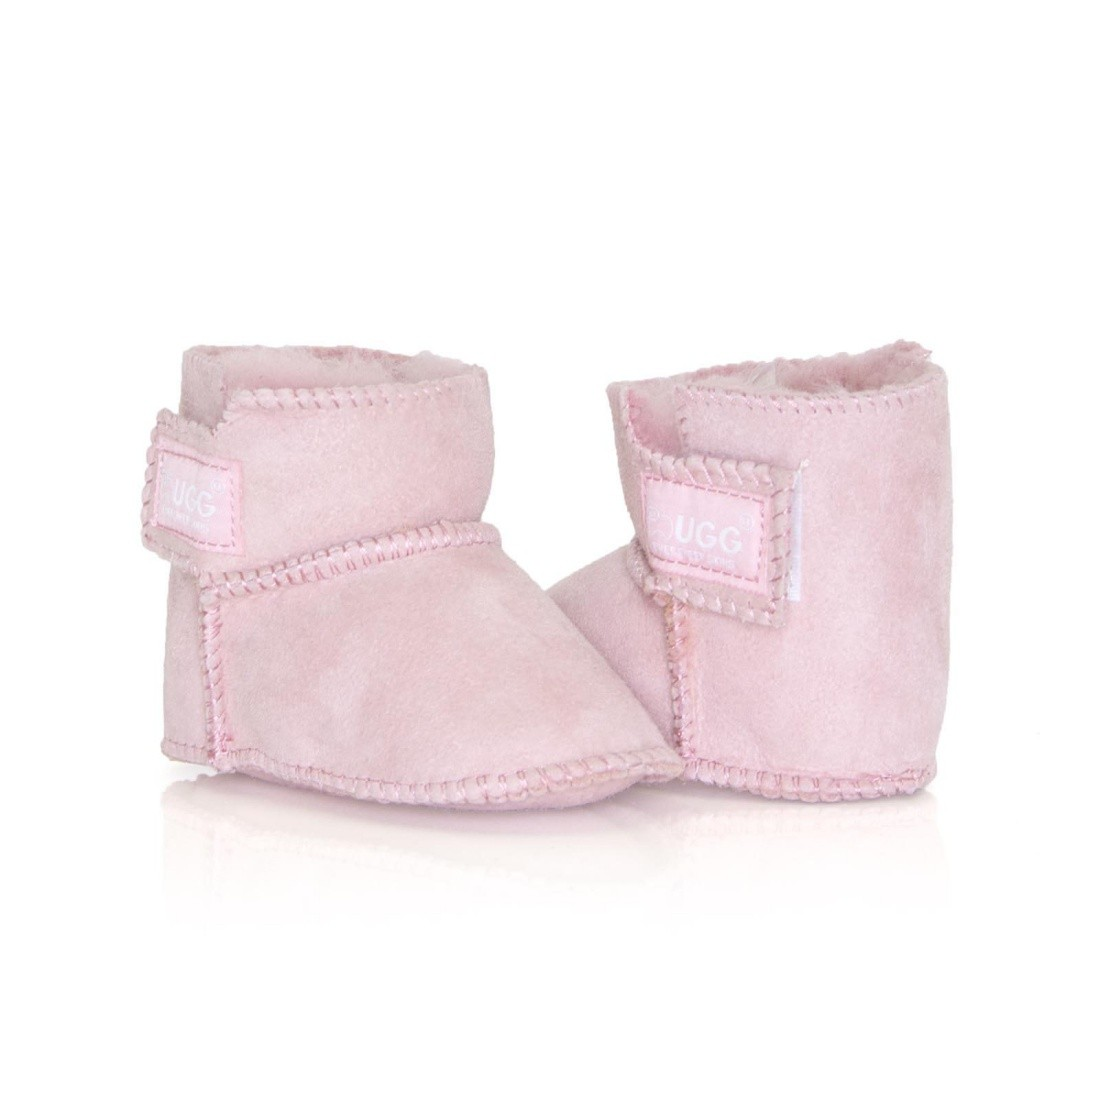 UGG Baby Erin Bootie Infant Boots - Pink - S